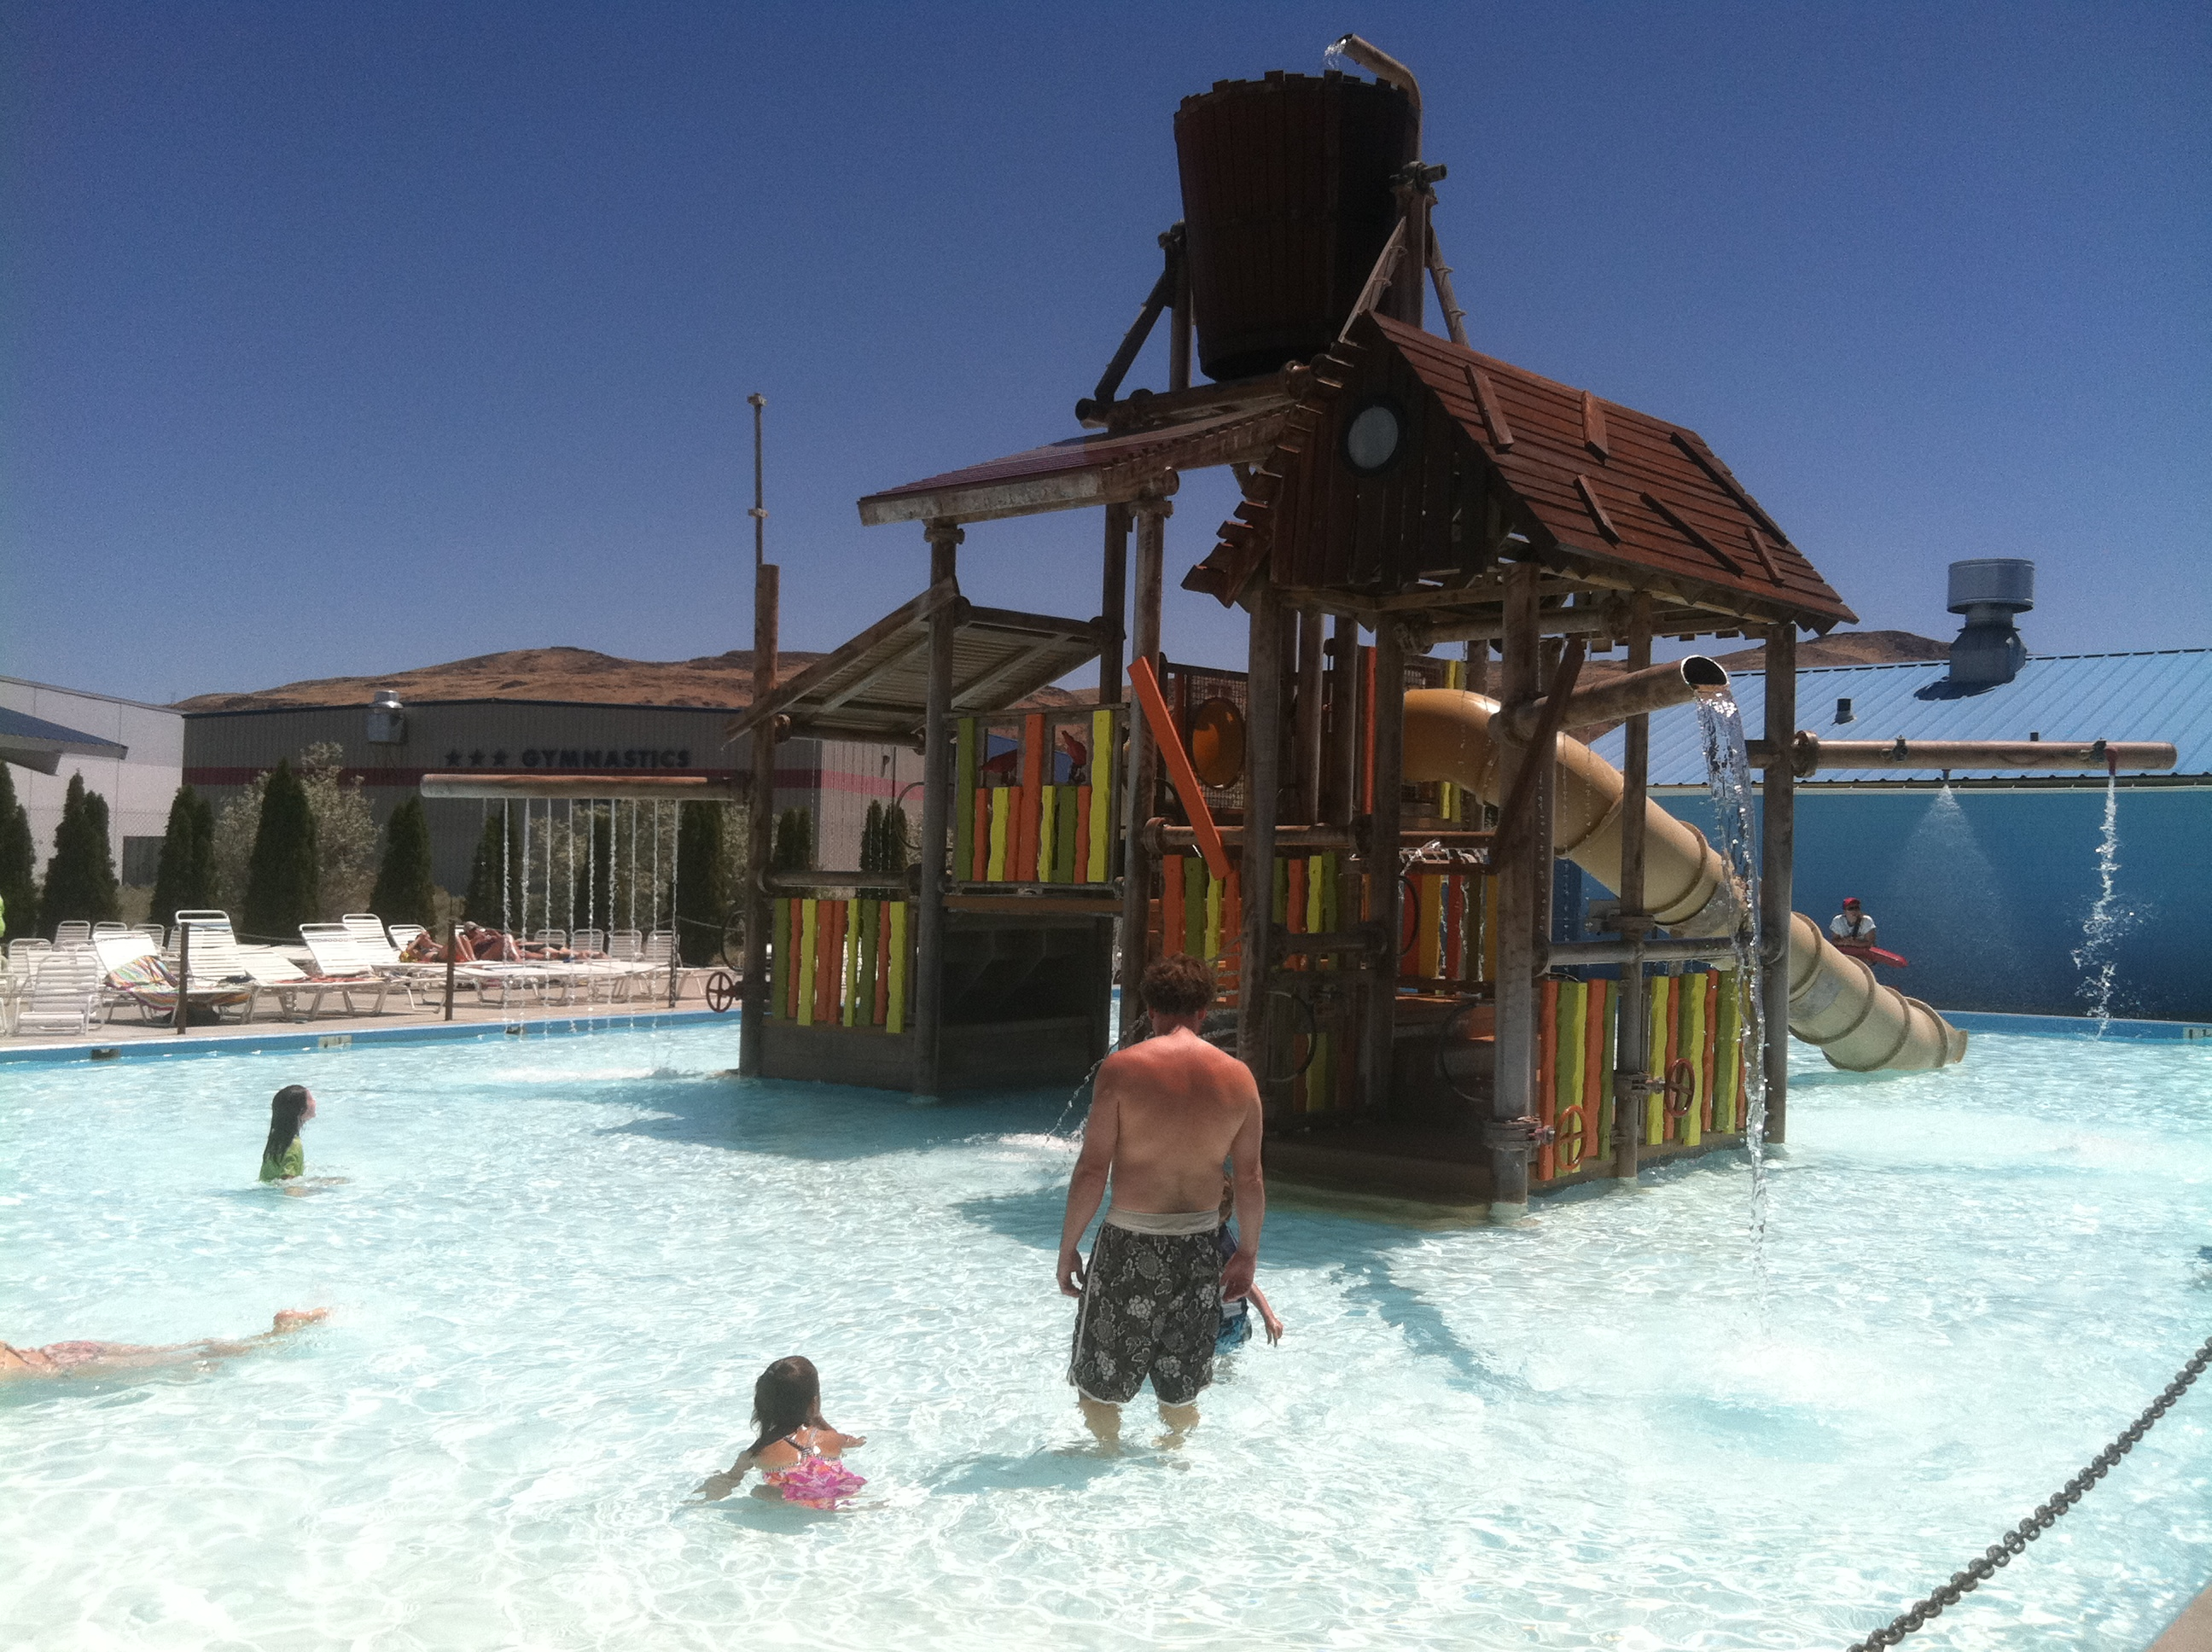 Branded Double jj ranch water park pictures